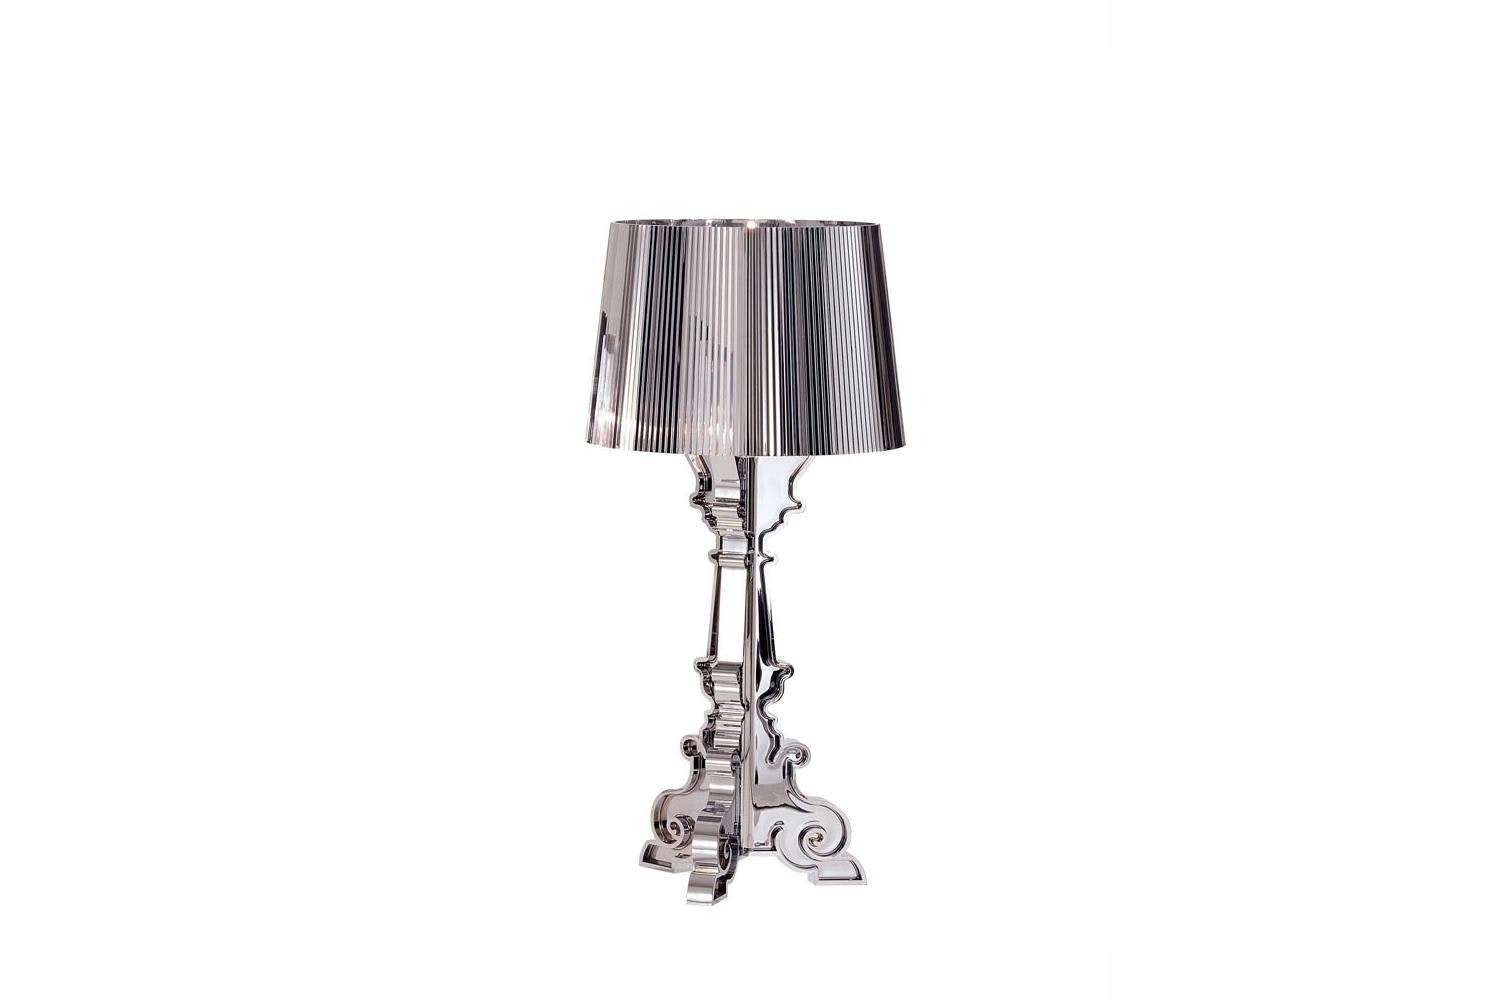 Bourgie Metallic Table Lamp by Ferruccio Laviani for Kartell